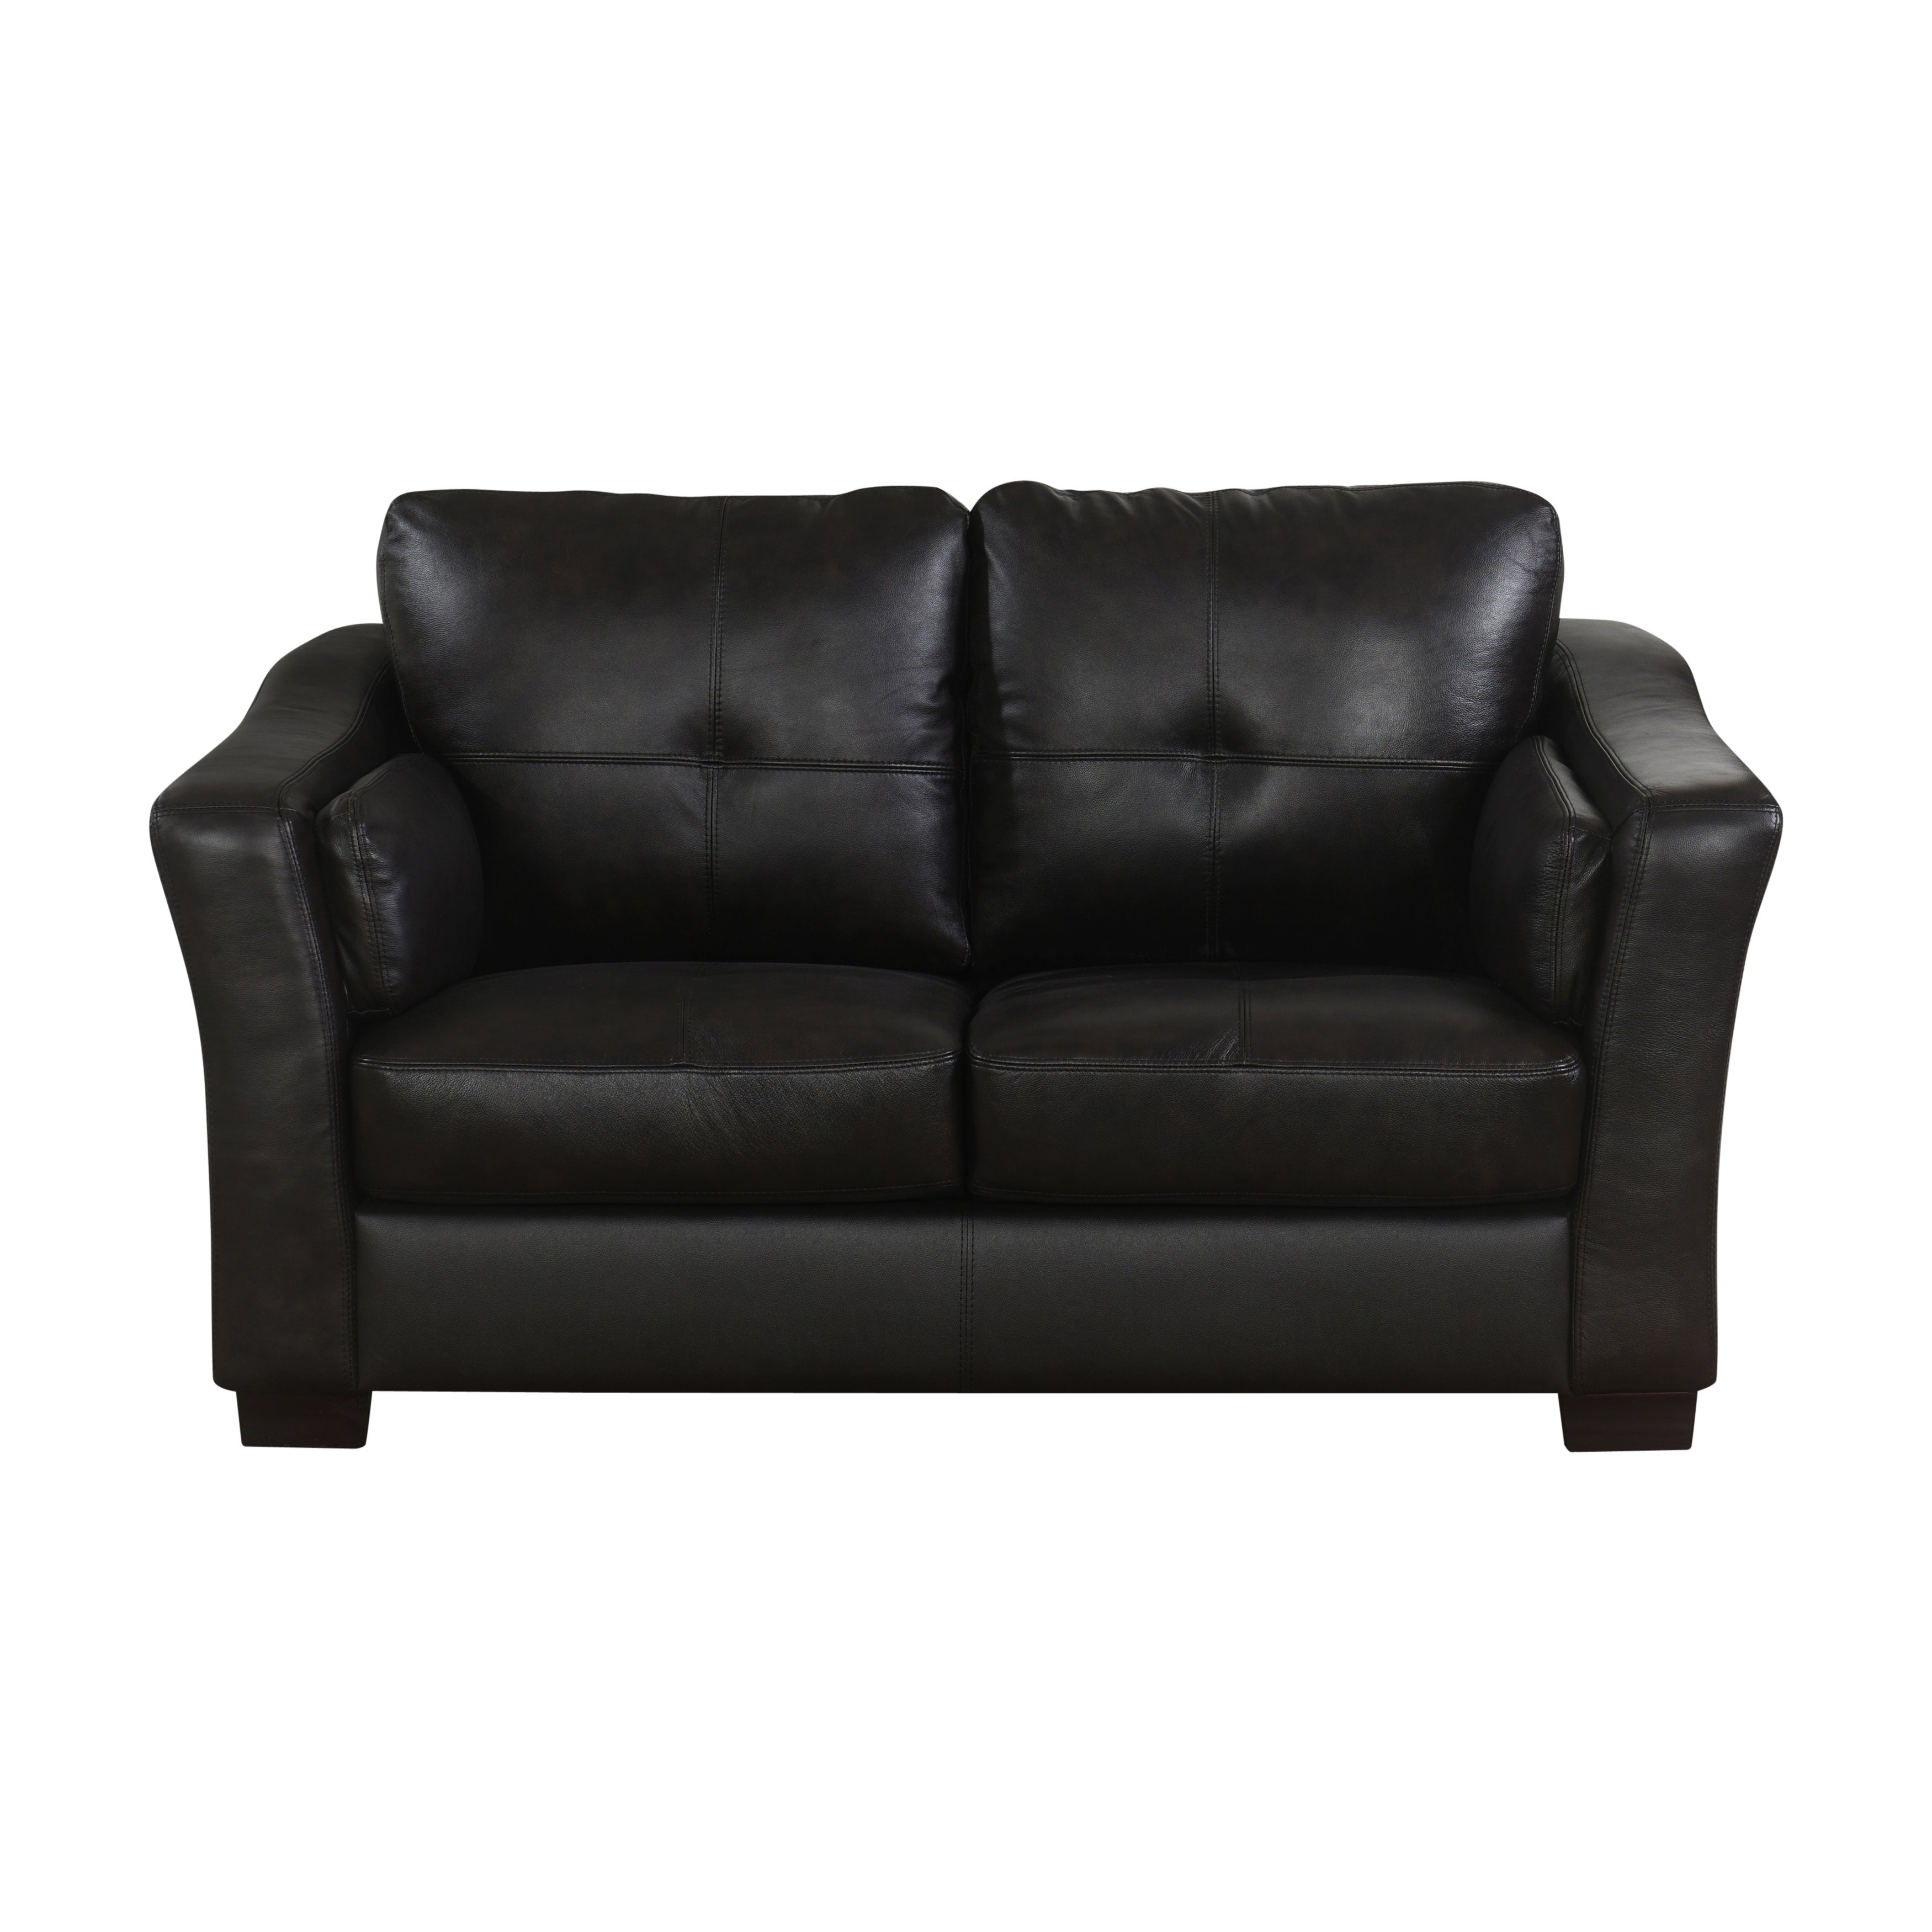 Abbyson Torrance Top Grain Dark Brown Leather Sofa And Loveseat On Free Shipping Today 9966862